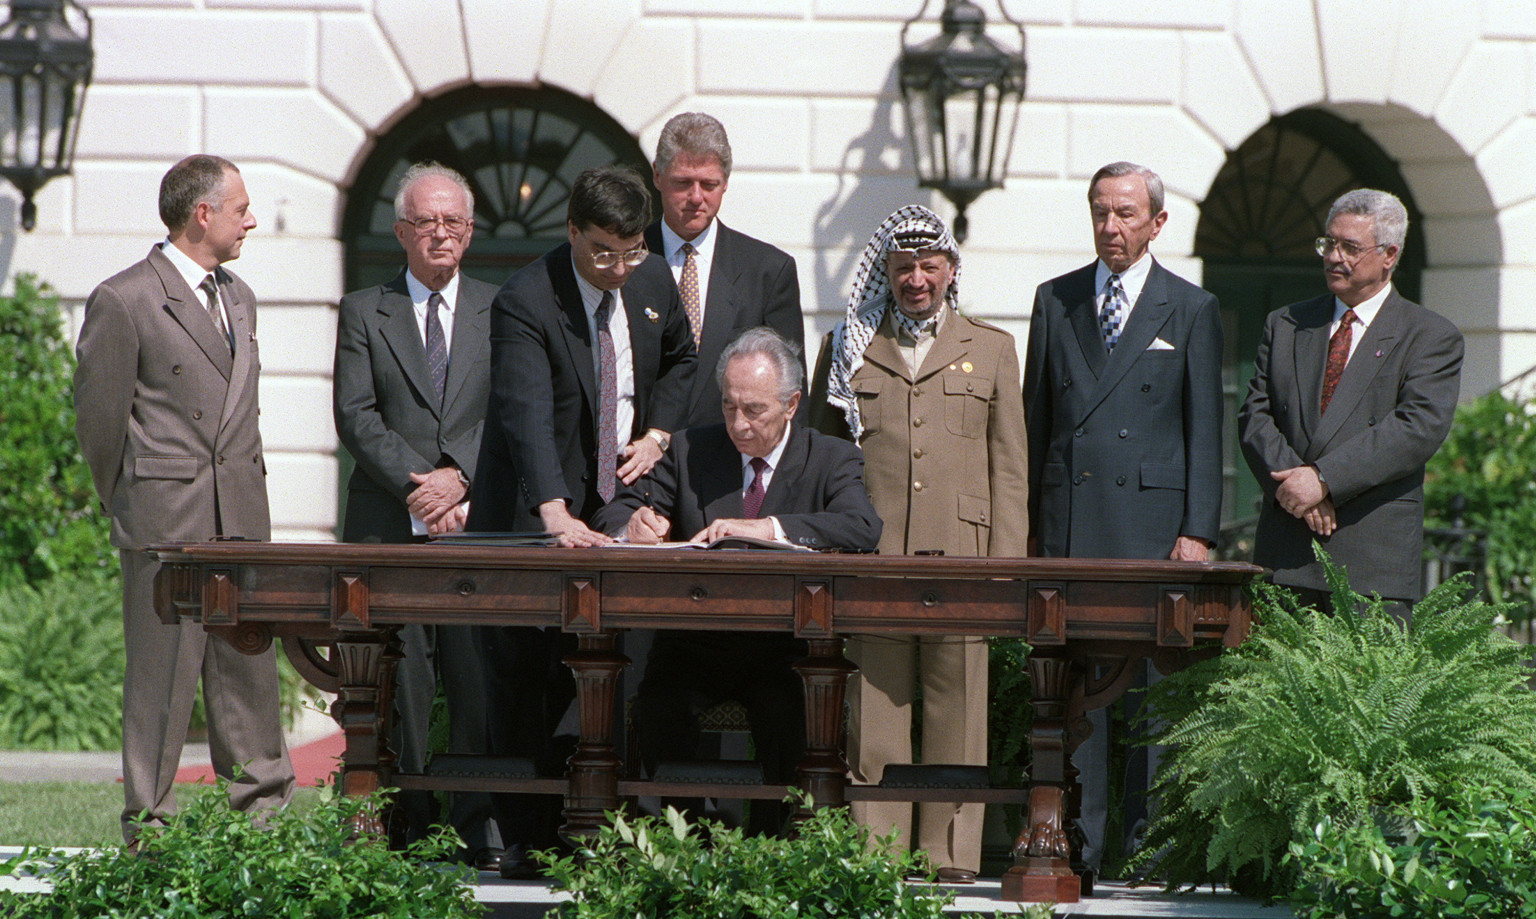 an analysis of the impact of the signing of middle east peace treaty in camp david accords in march  The middle east took more of carter's time than any other single issue, as is made obvious by the hundred pages which carter allocates to the camp david summit in his memoirs camp david is the most recurring word in carter's keeping faith —more than salt, china, or even his wife rosalynn.